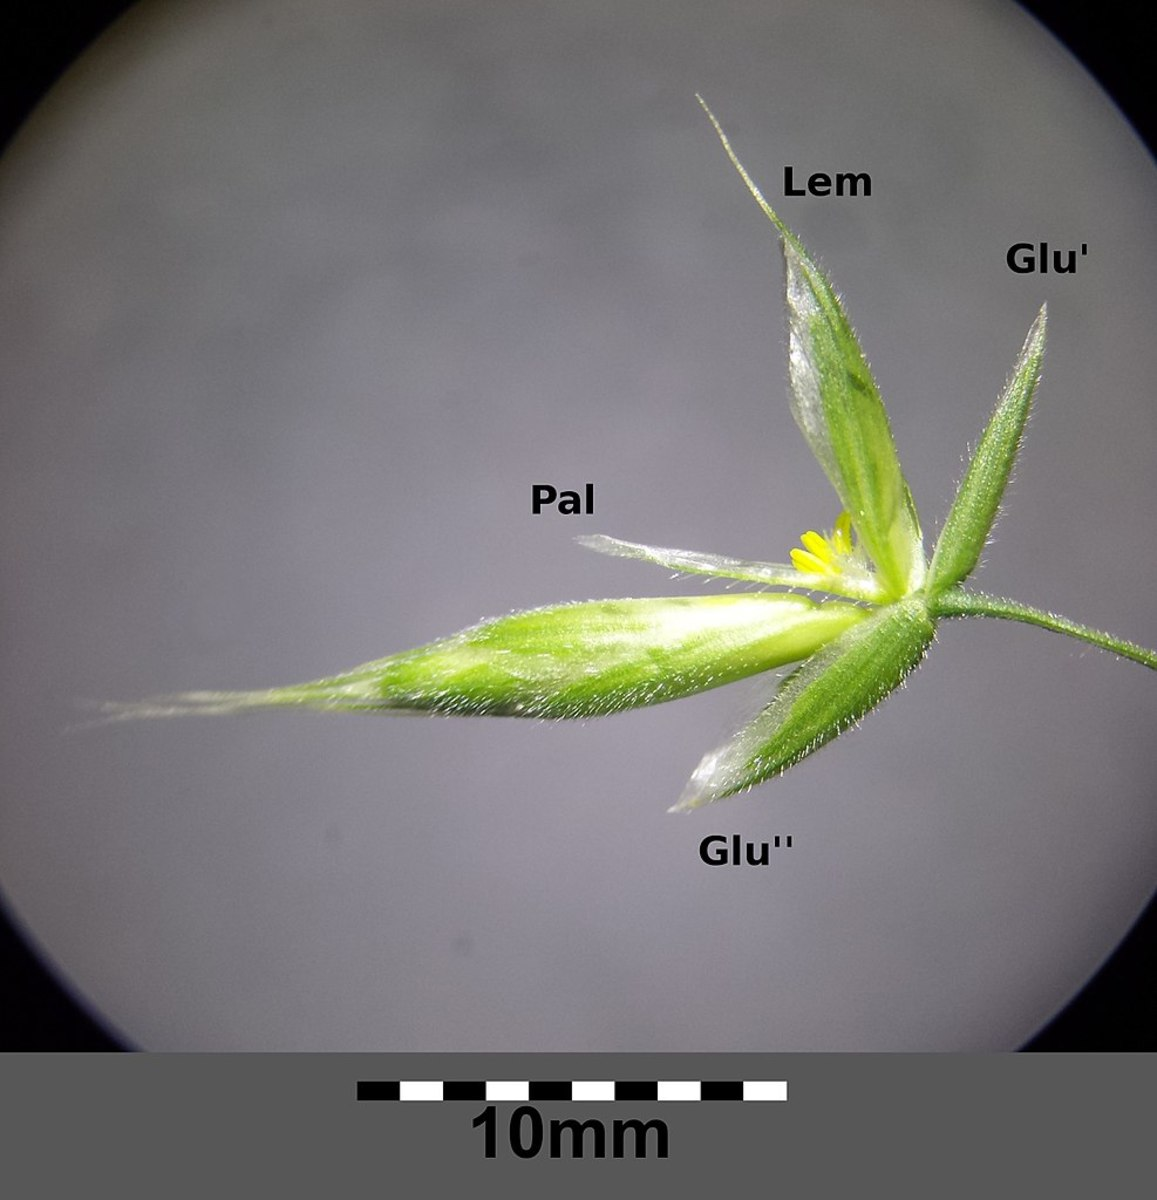 A floret inside a spikelet of Bromus hordeaceus (a member of the grass family) and an unopened spikelet